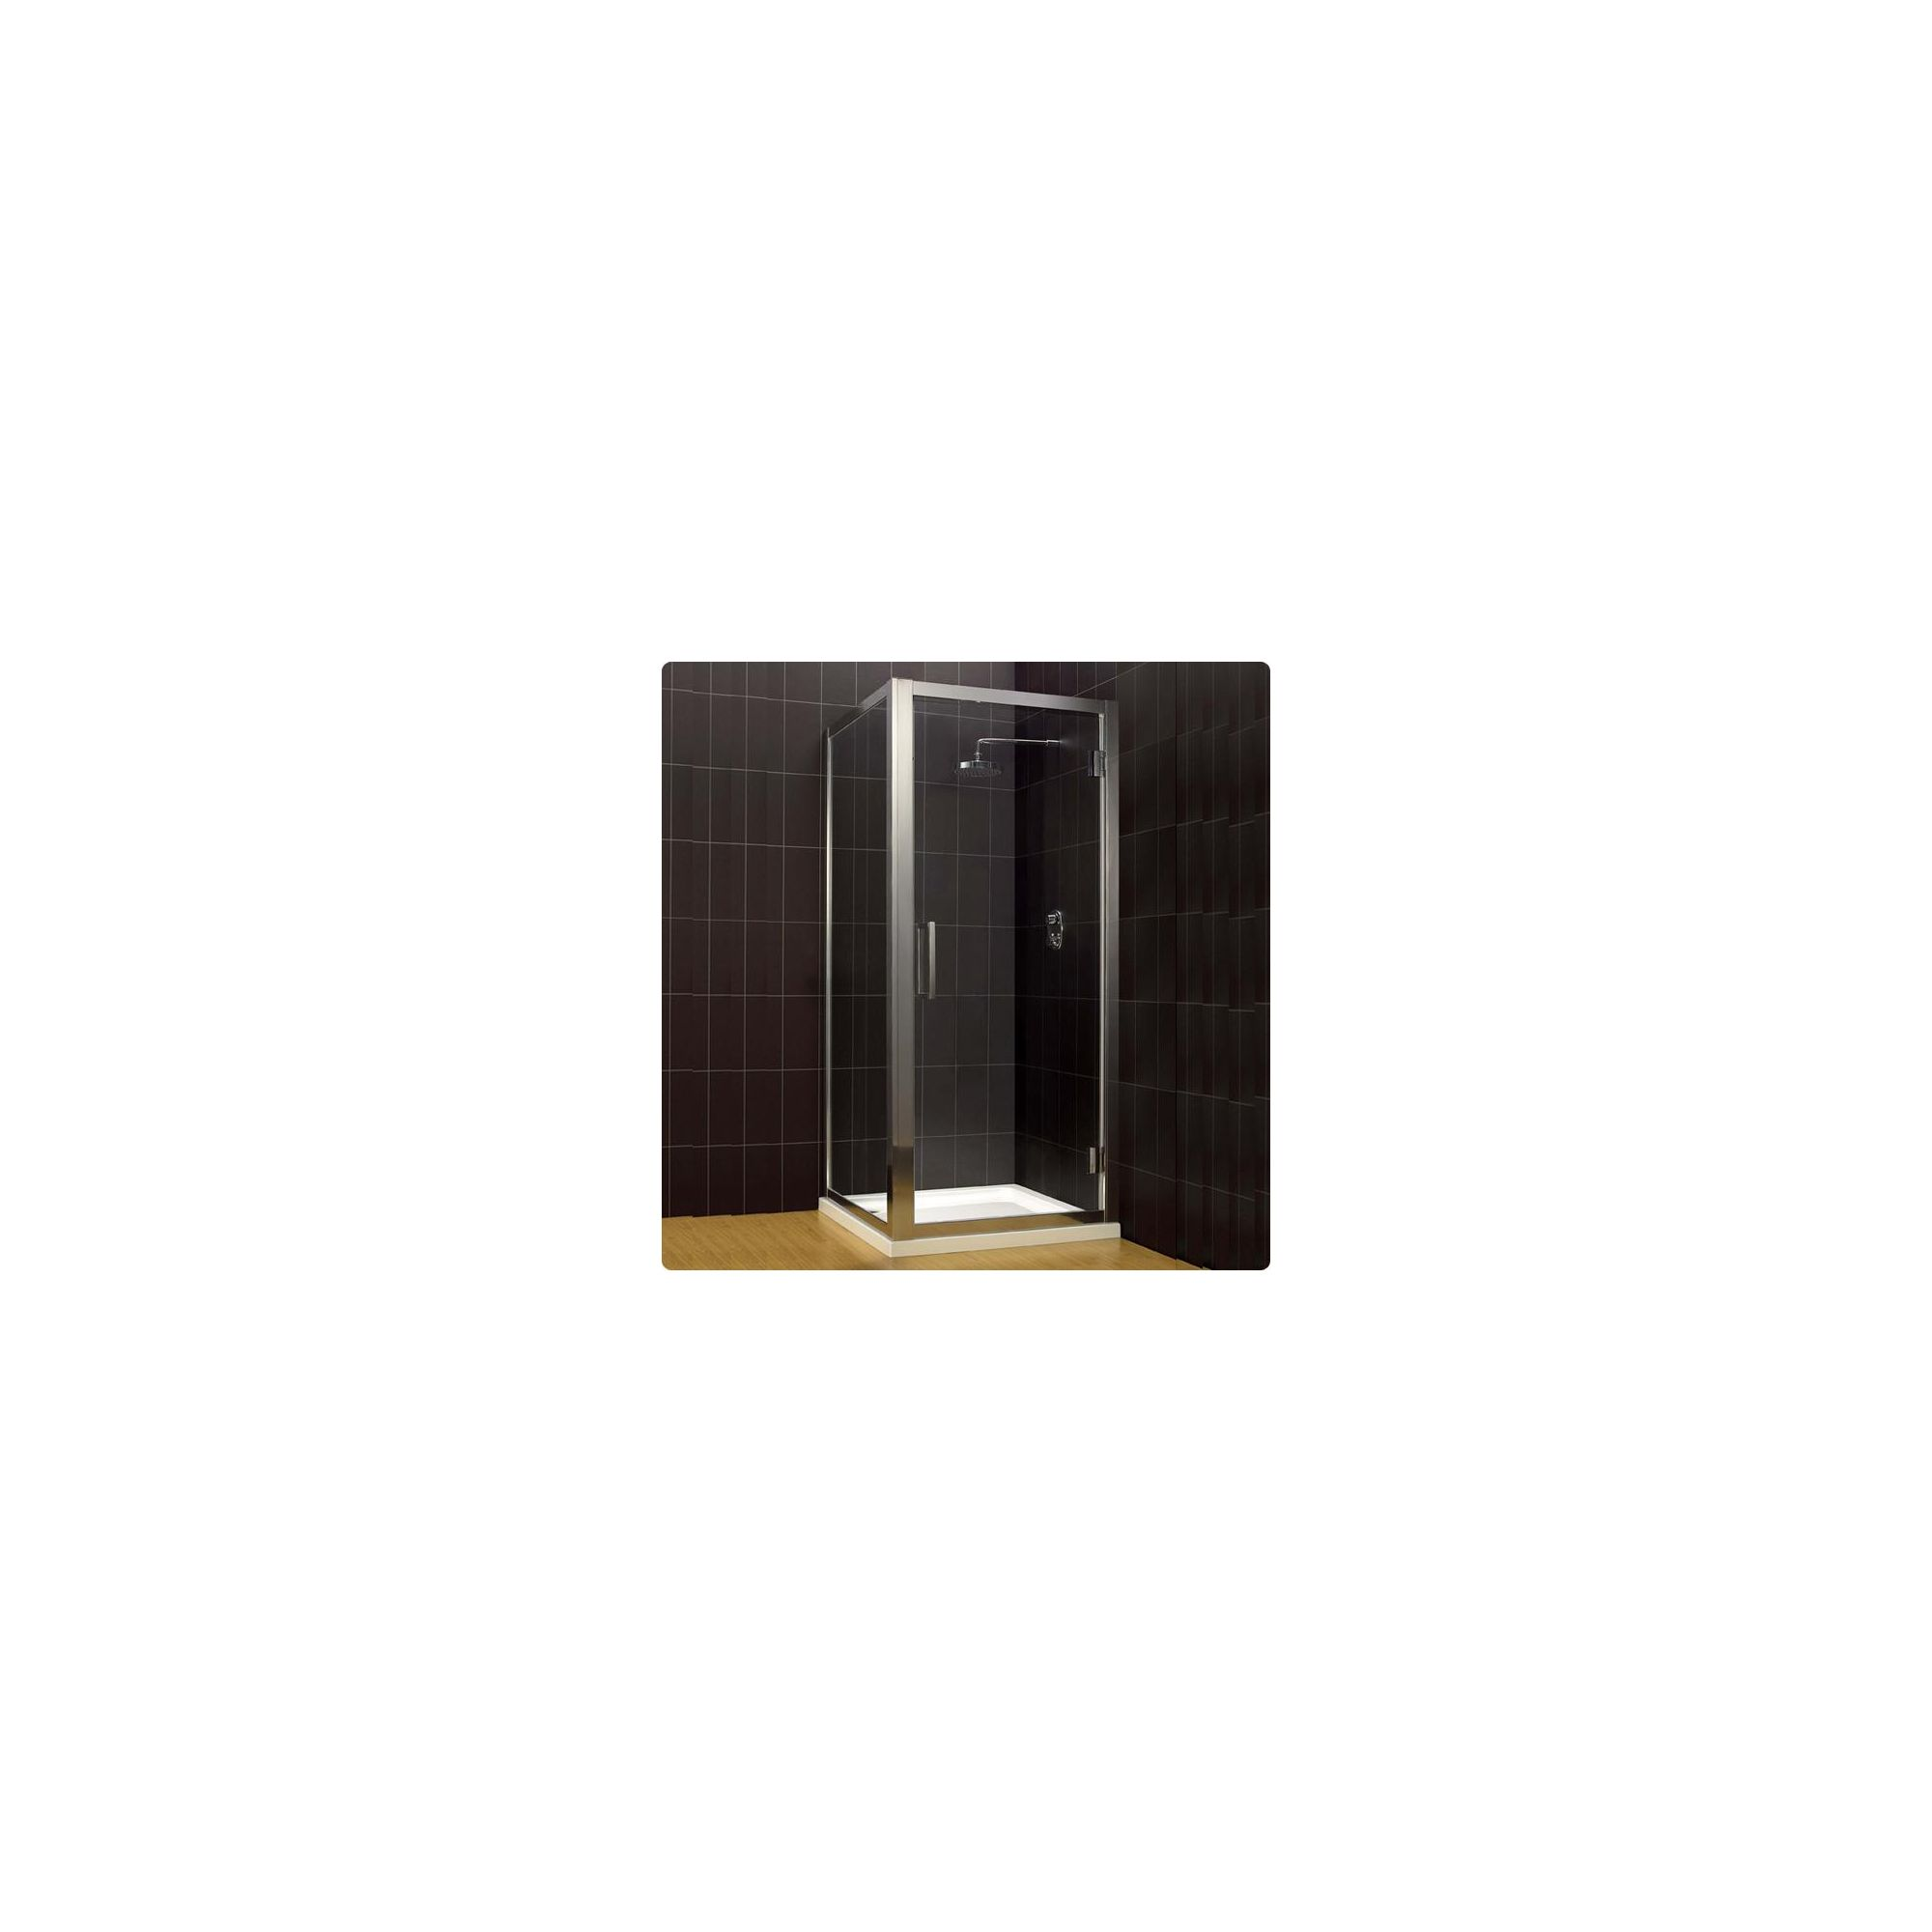 Duchy Supreme Silver Hinged Door Shower Enclosure, 1000mm x 800mm, Standard Tray, 8mm Glass at Tesco Direct